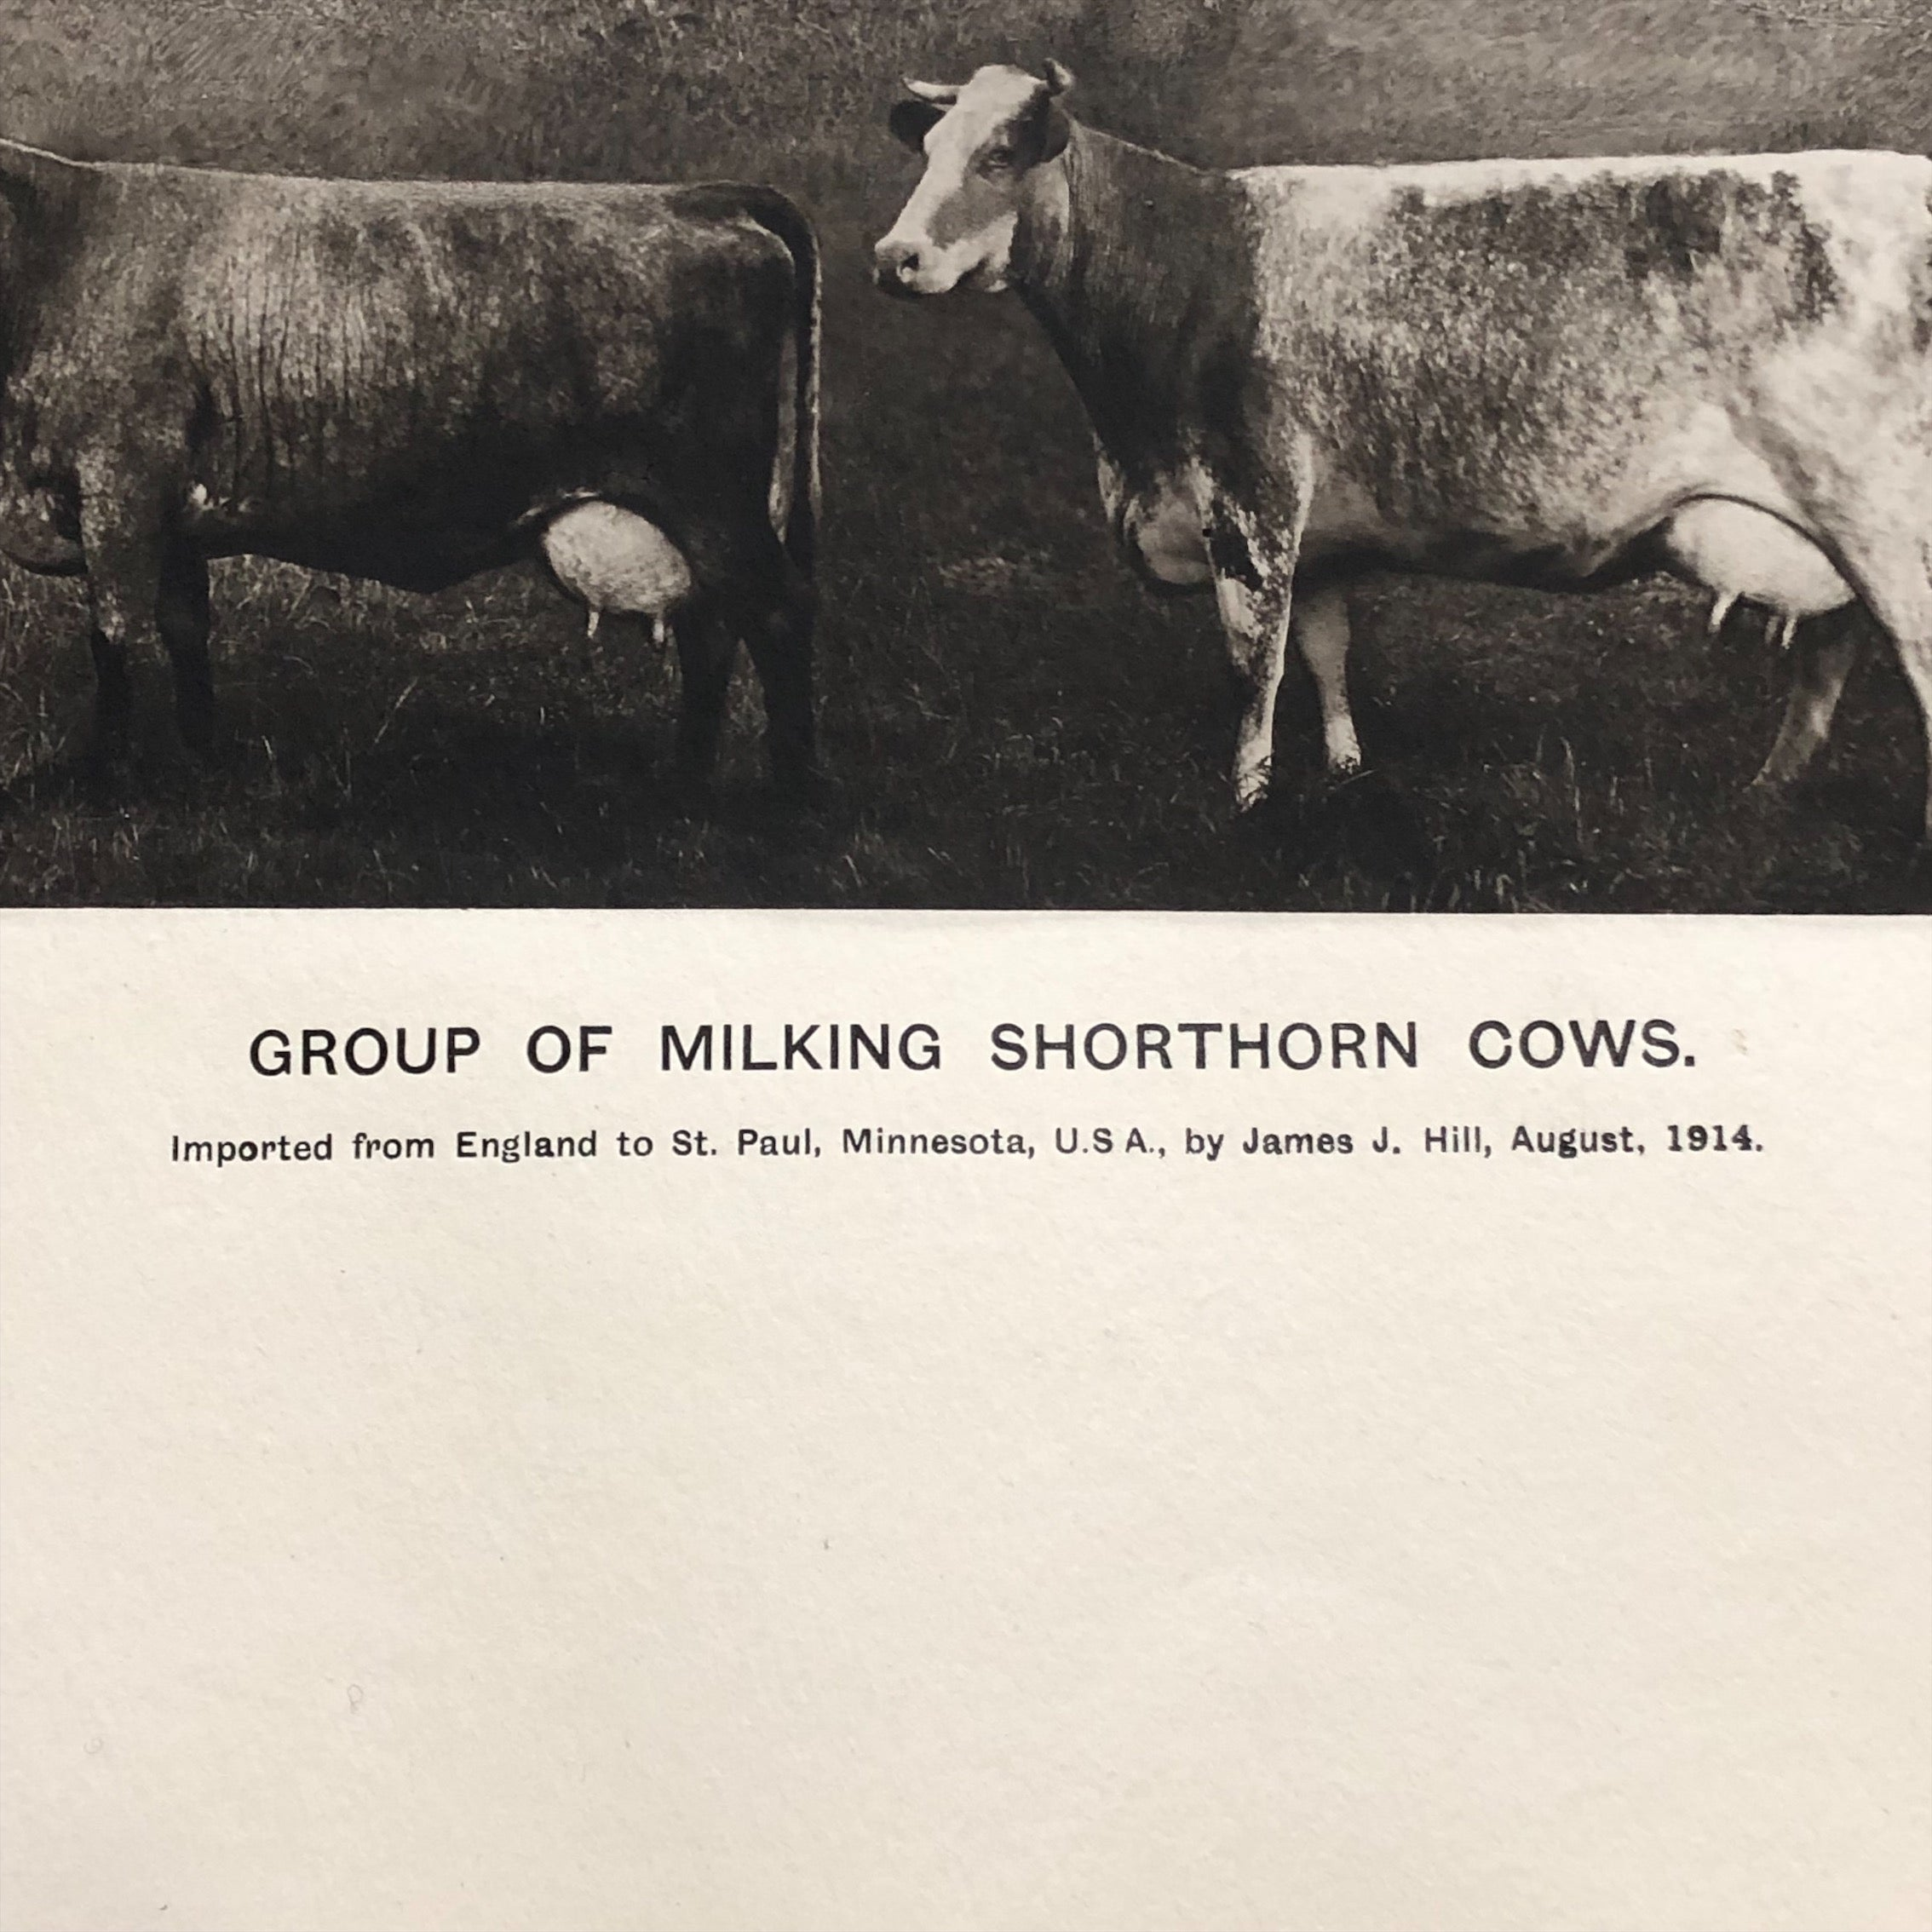 Antique Bovine Lithograph by G.H. Parsons - Group of Milking Shorthand Cows - Rare Animal Print